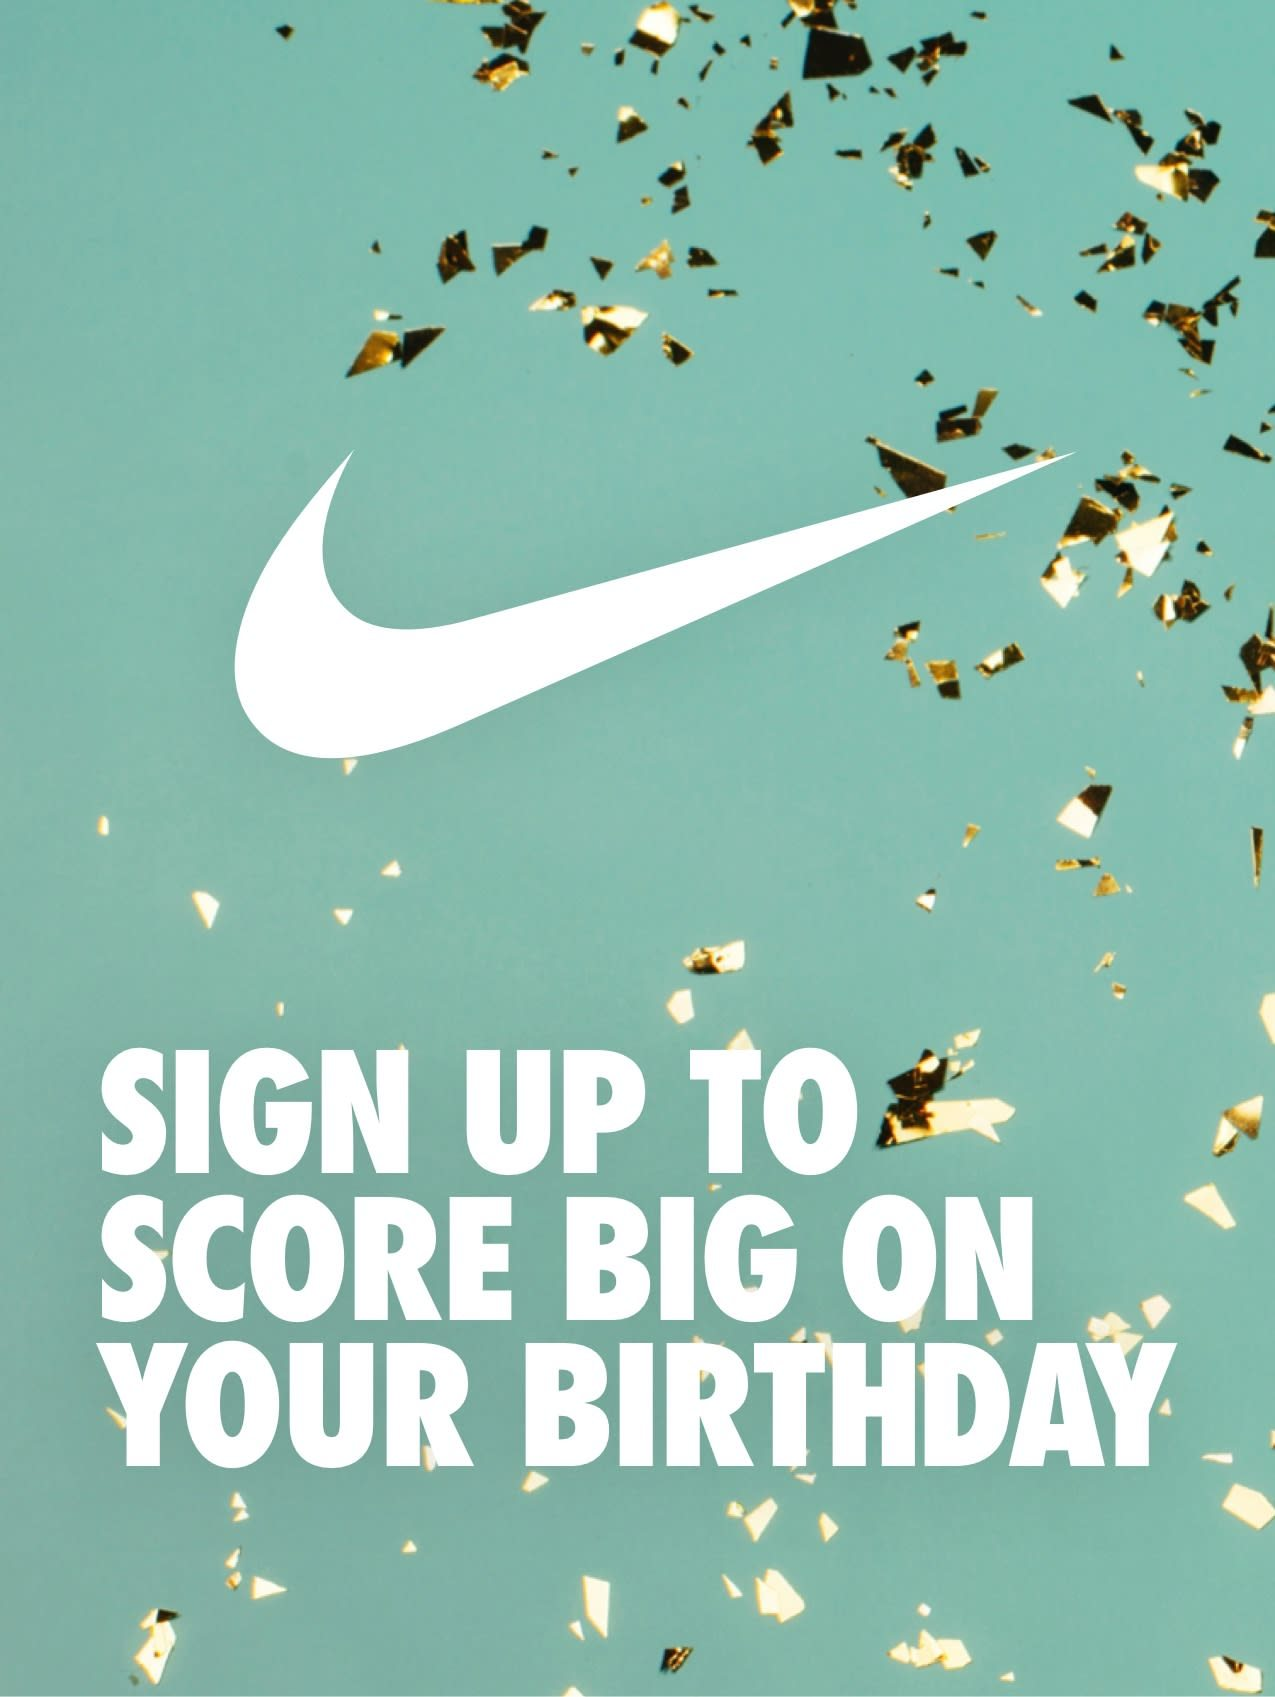 dolor de muelas rock instinto  Tell us your birthday to score a gift from Nike - Nike Email Archive